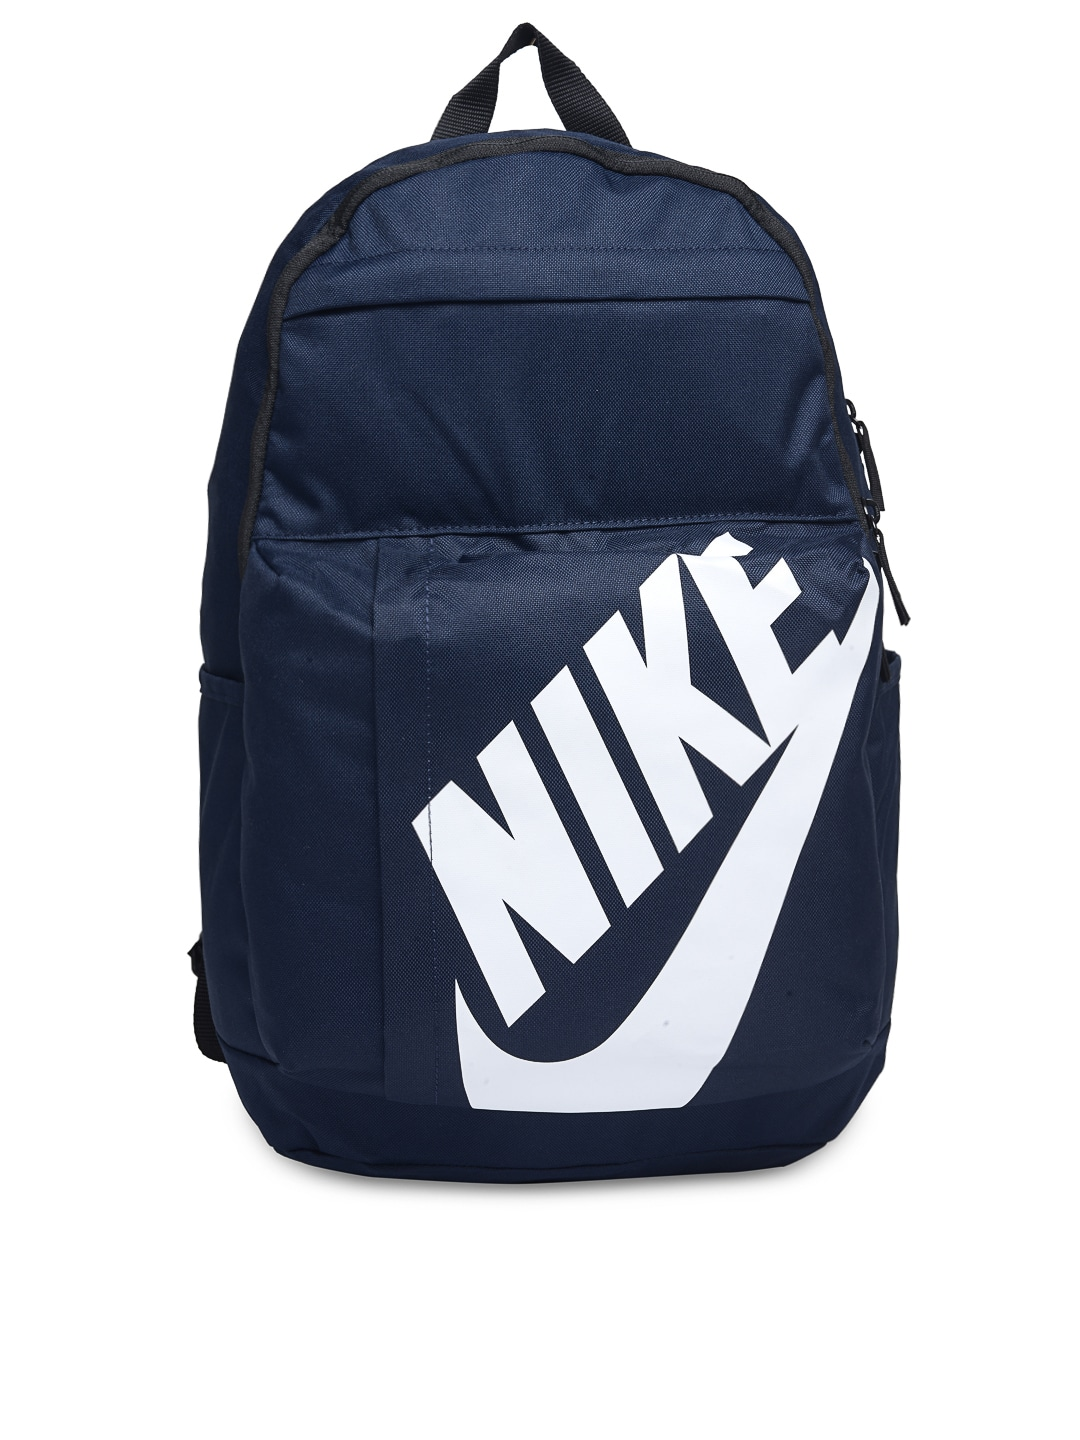 0f10e58a8f67 Nike Blue Backpacks Jackets - Buy Nike Blue Backpacks Jackets online in  India